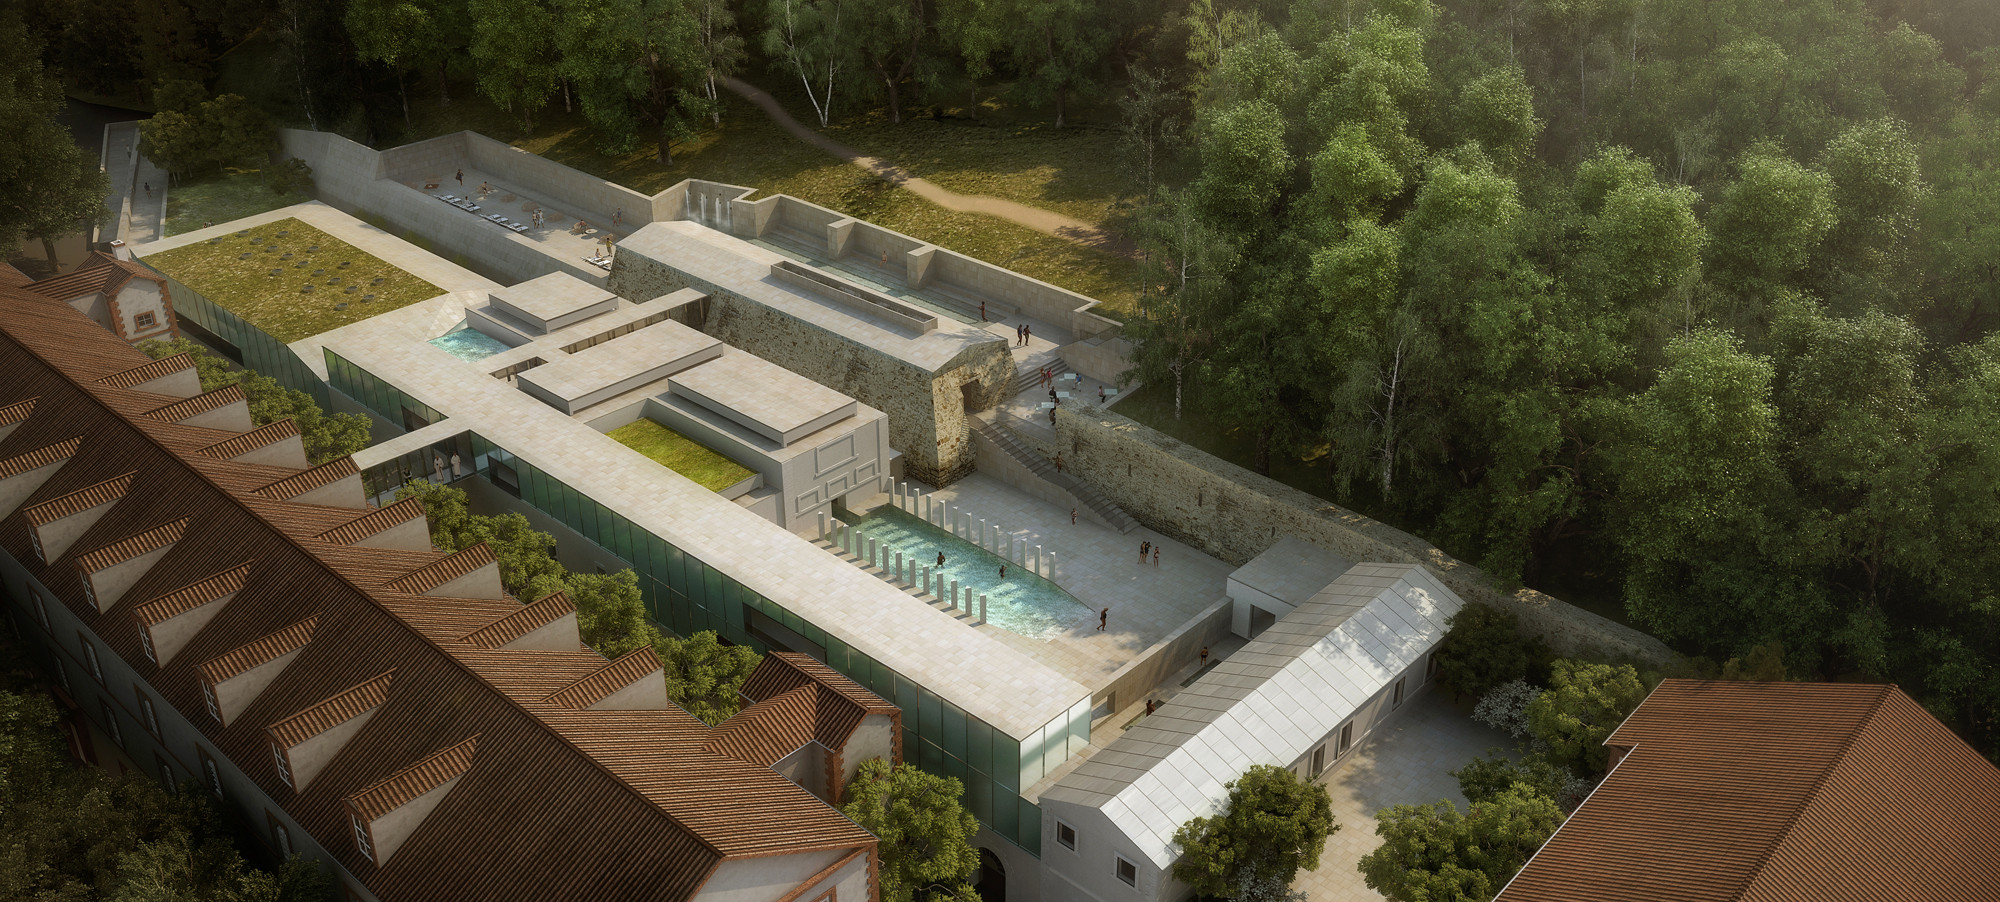 Francisco Mangado-Led Team Wins Thermal Bath Competition in Southern France, Courtesy of Francisco Mangado